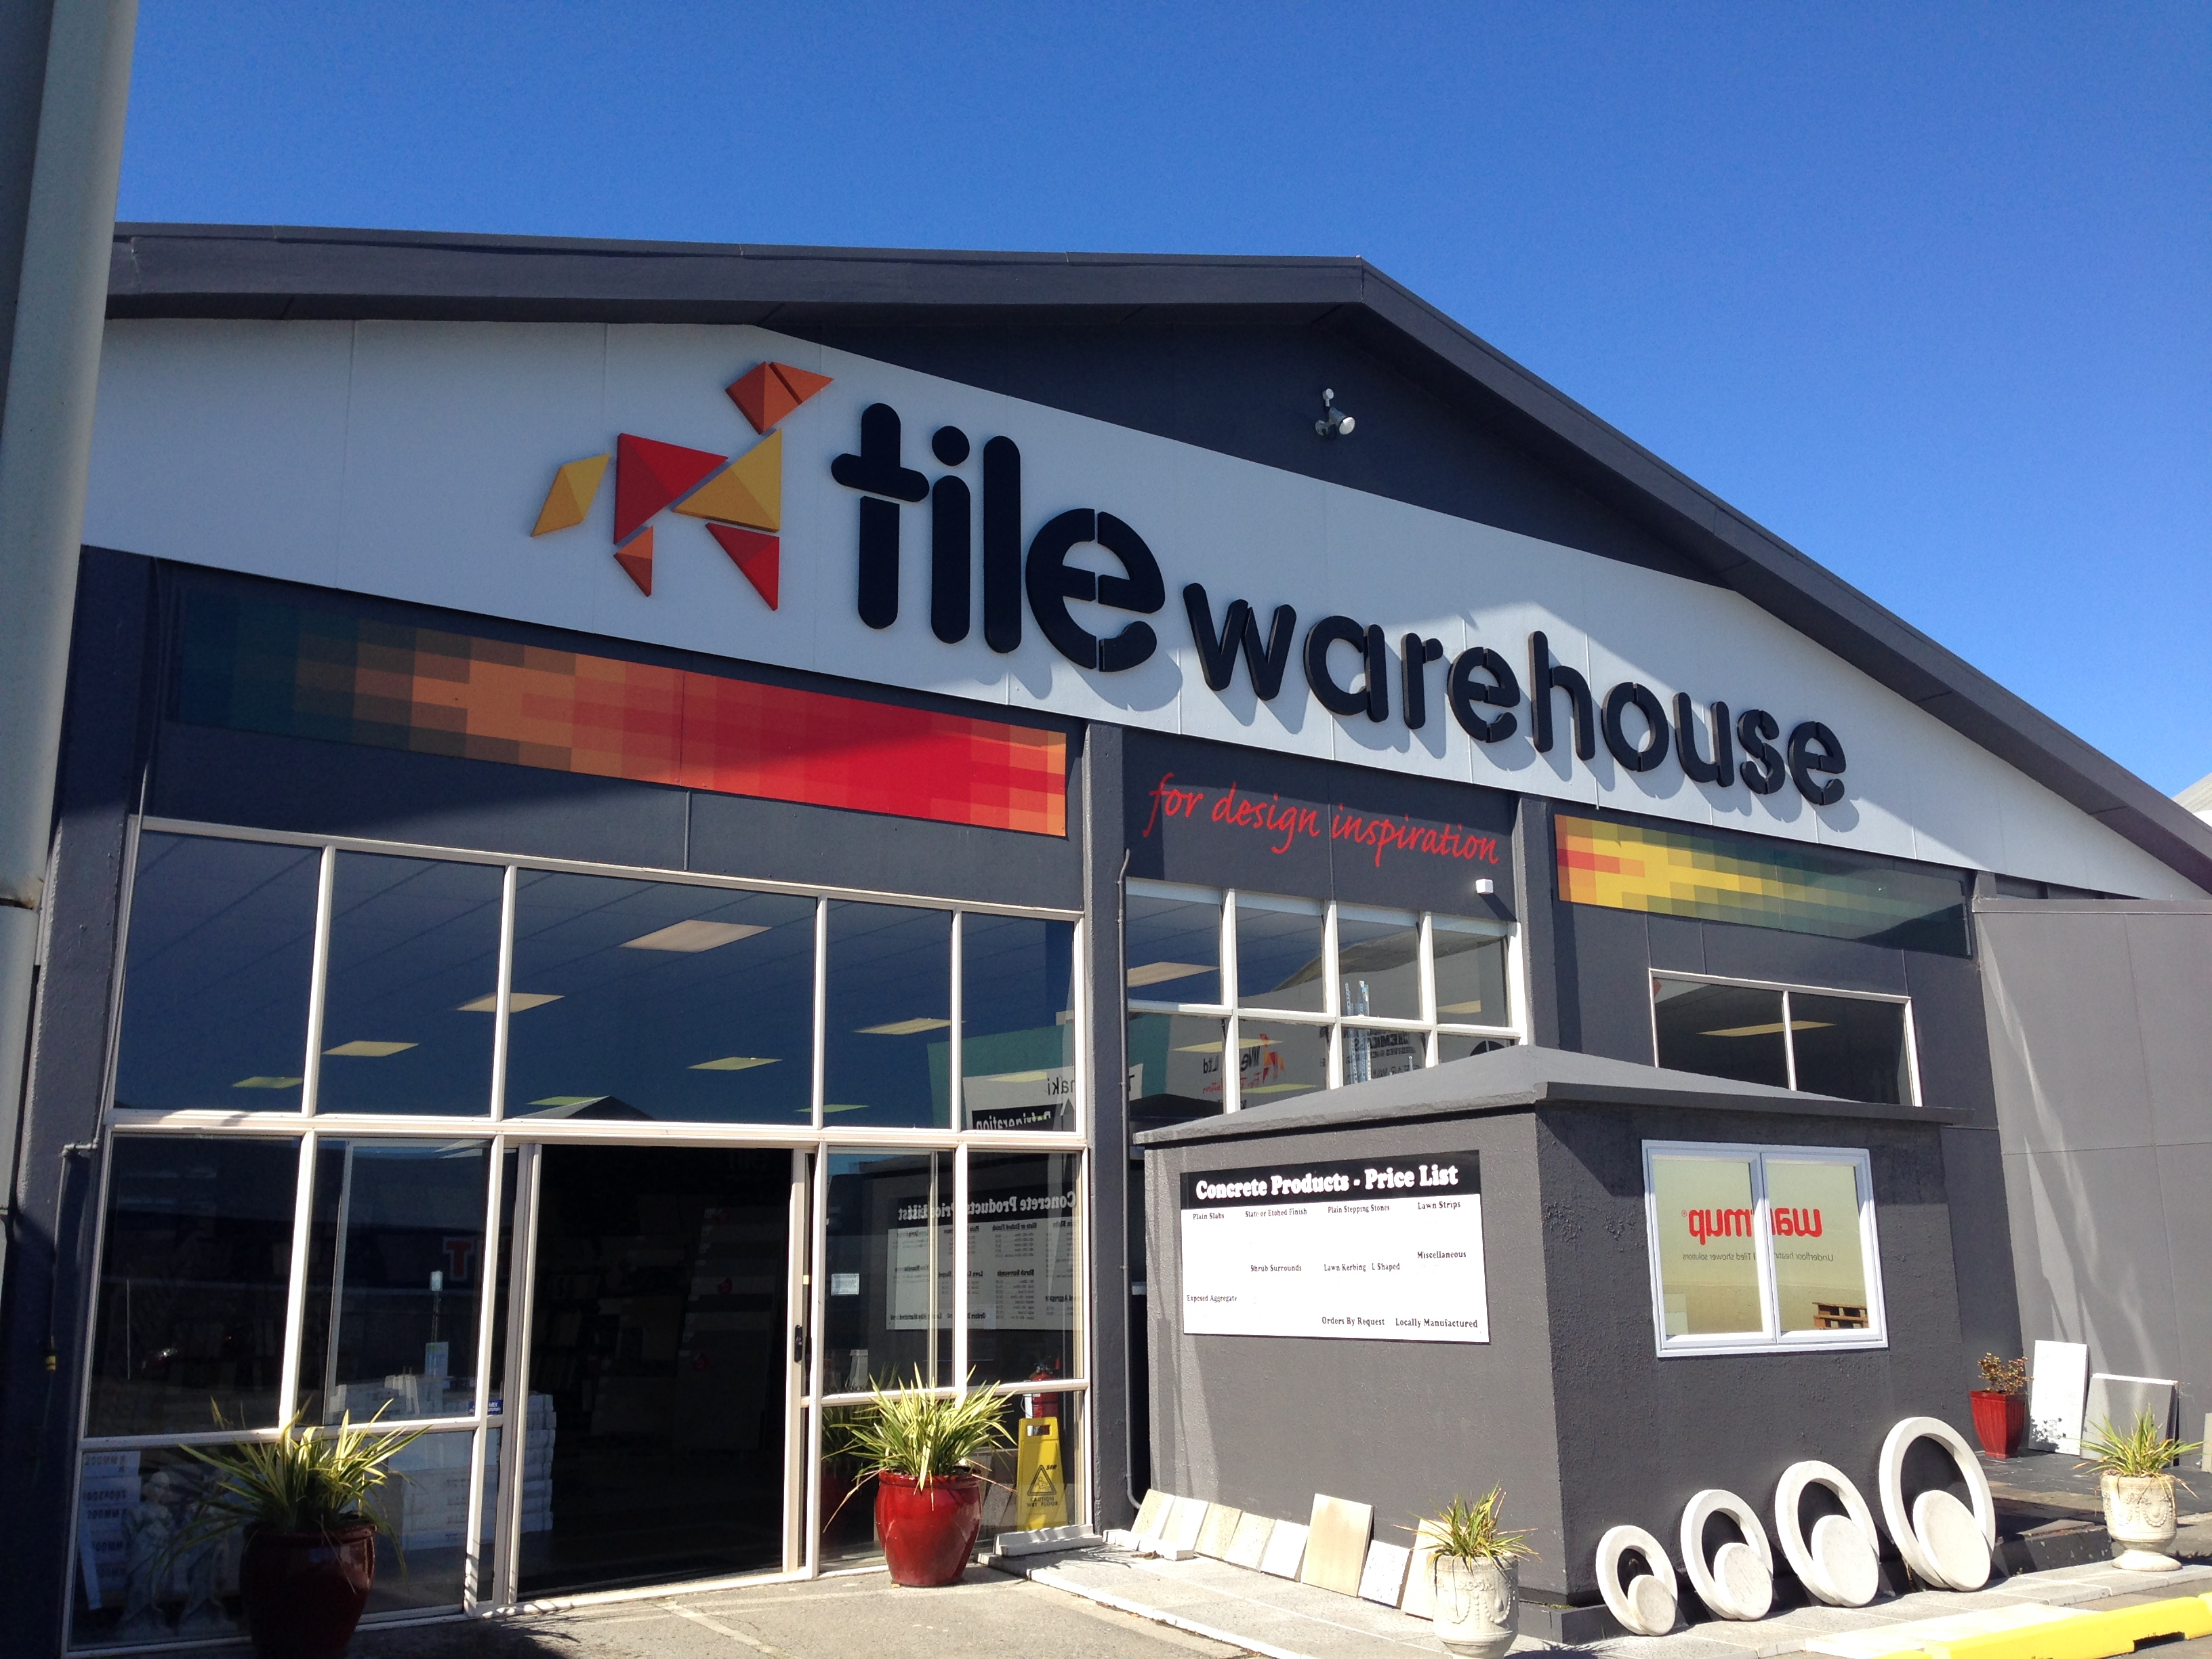 new plymouth tile warehouse